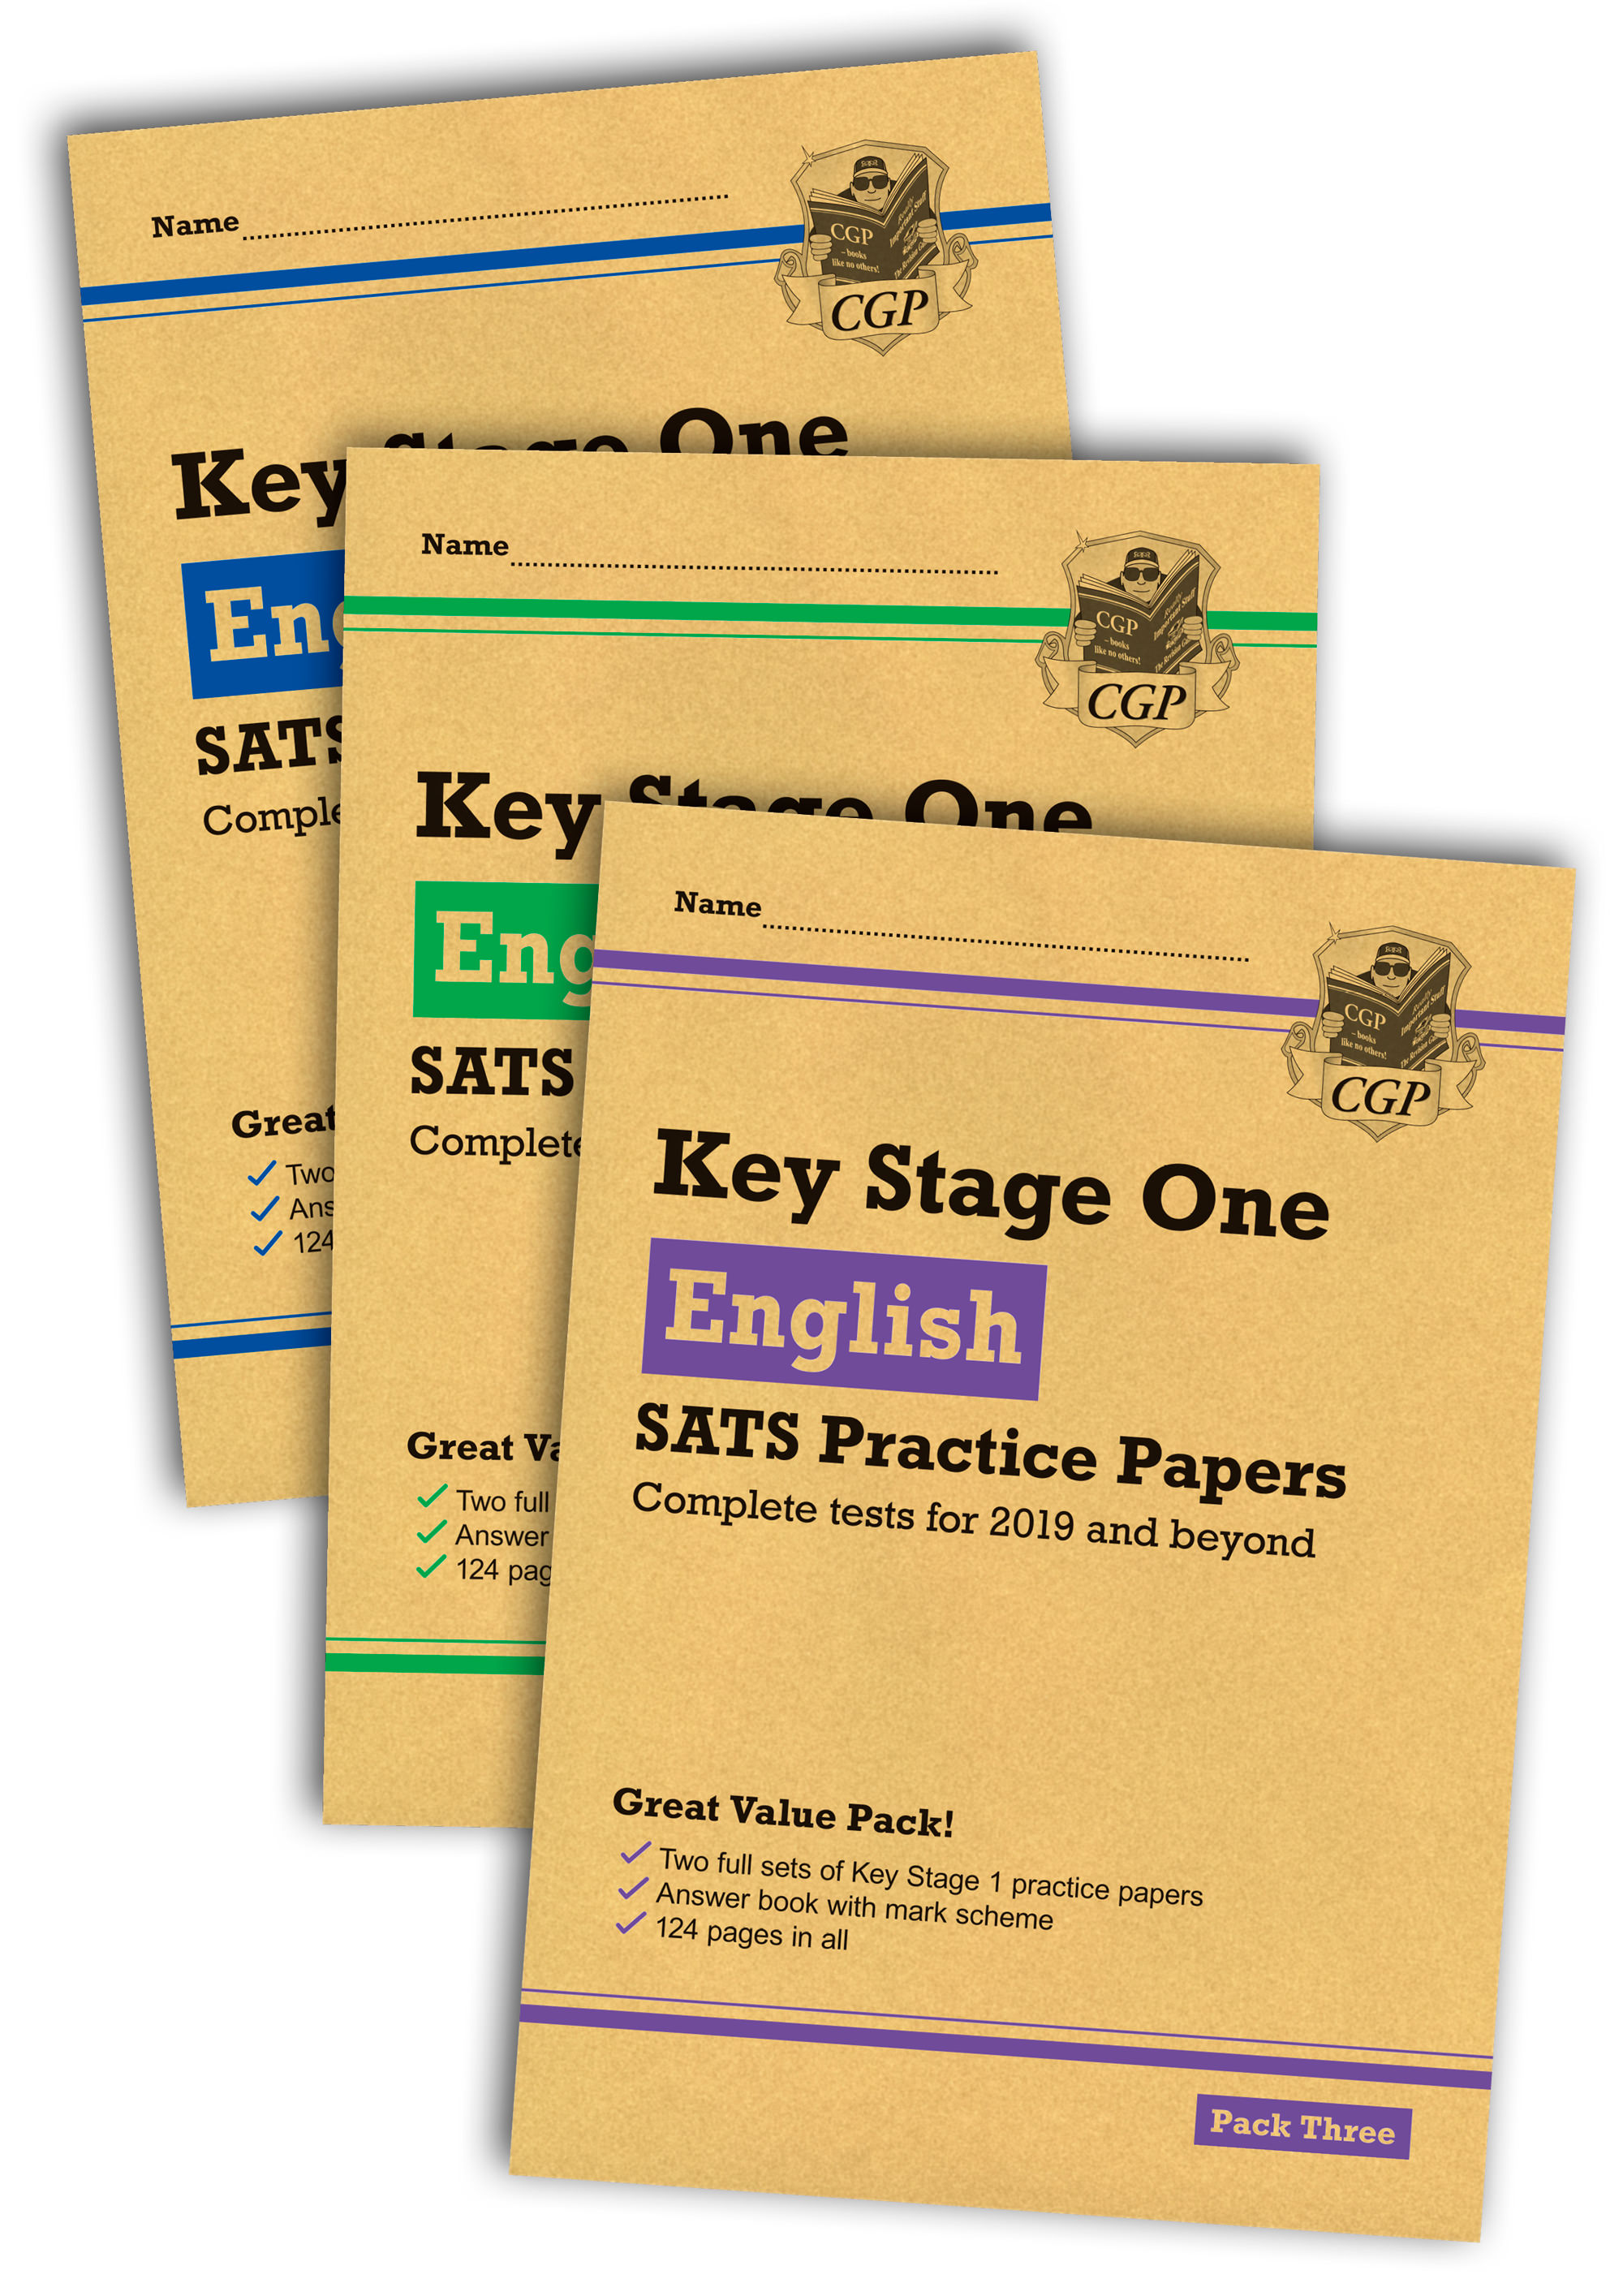 EHB3P13 - New KS1 English SATS Practice Paper Bundle: Packs 1, 2 & 3 (for the tests in 2019)